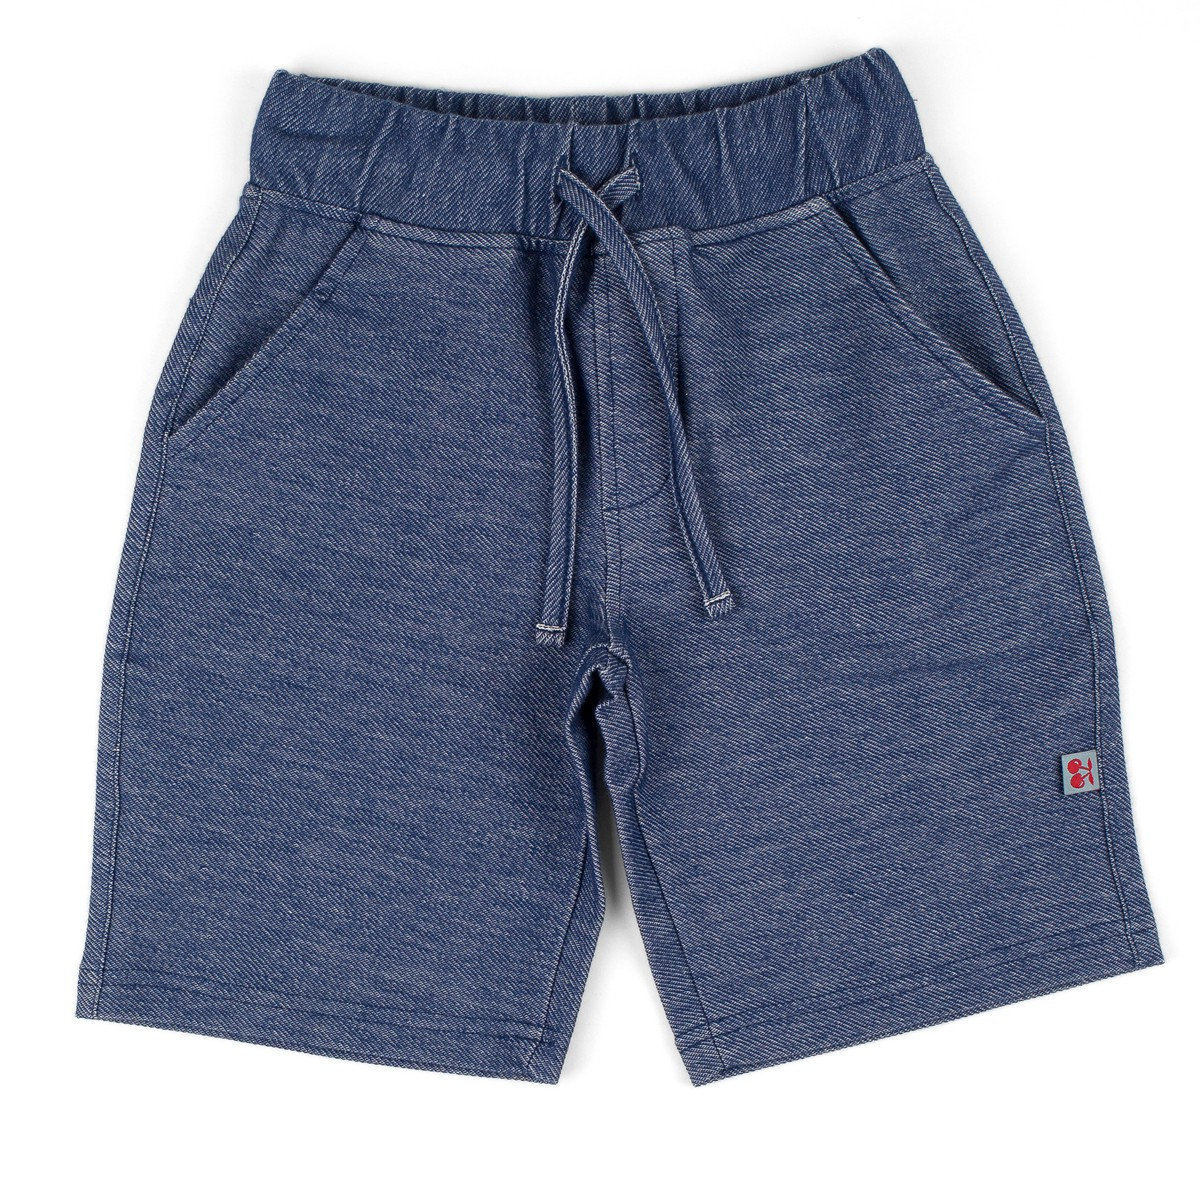 Short terry denim